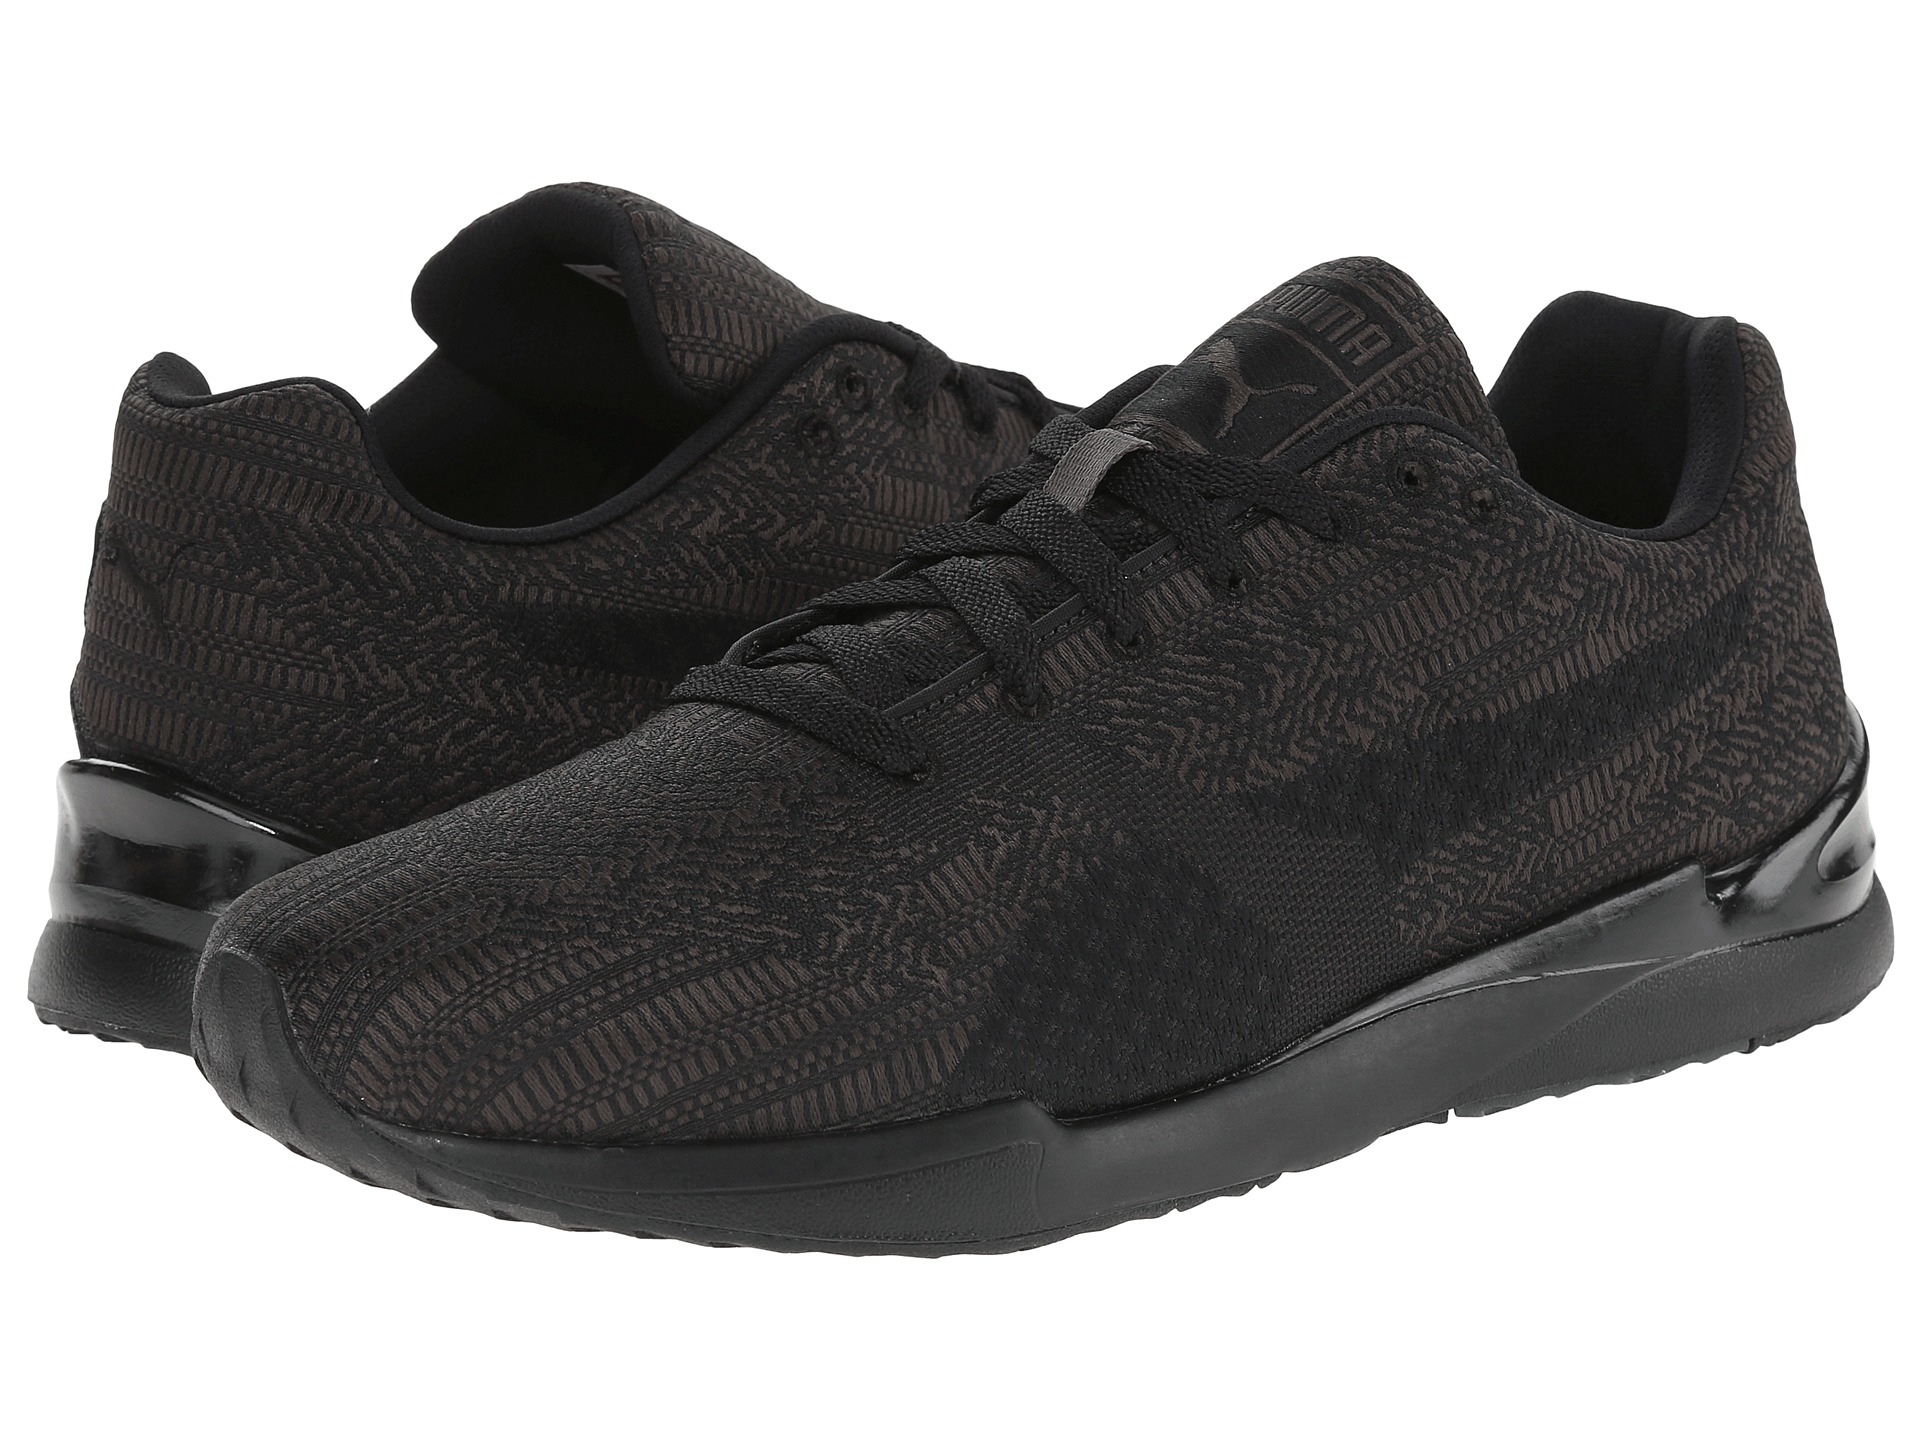 puma running shoes all black. gallery puma running shoes all black a